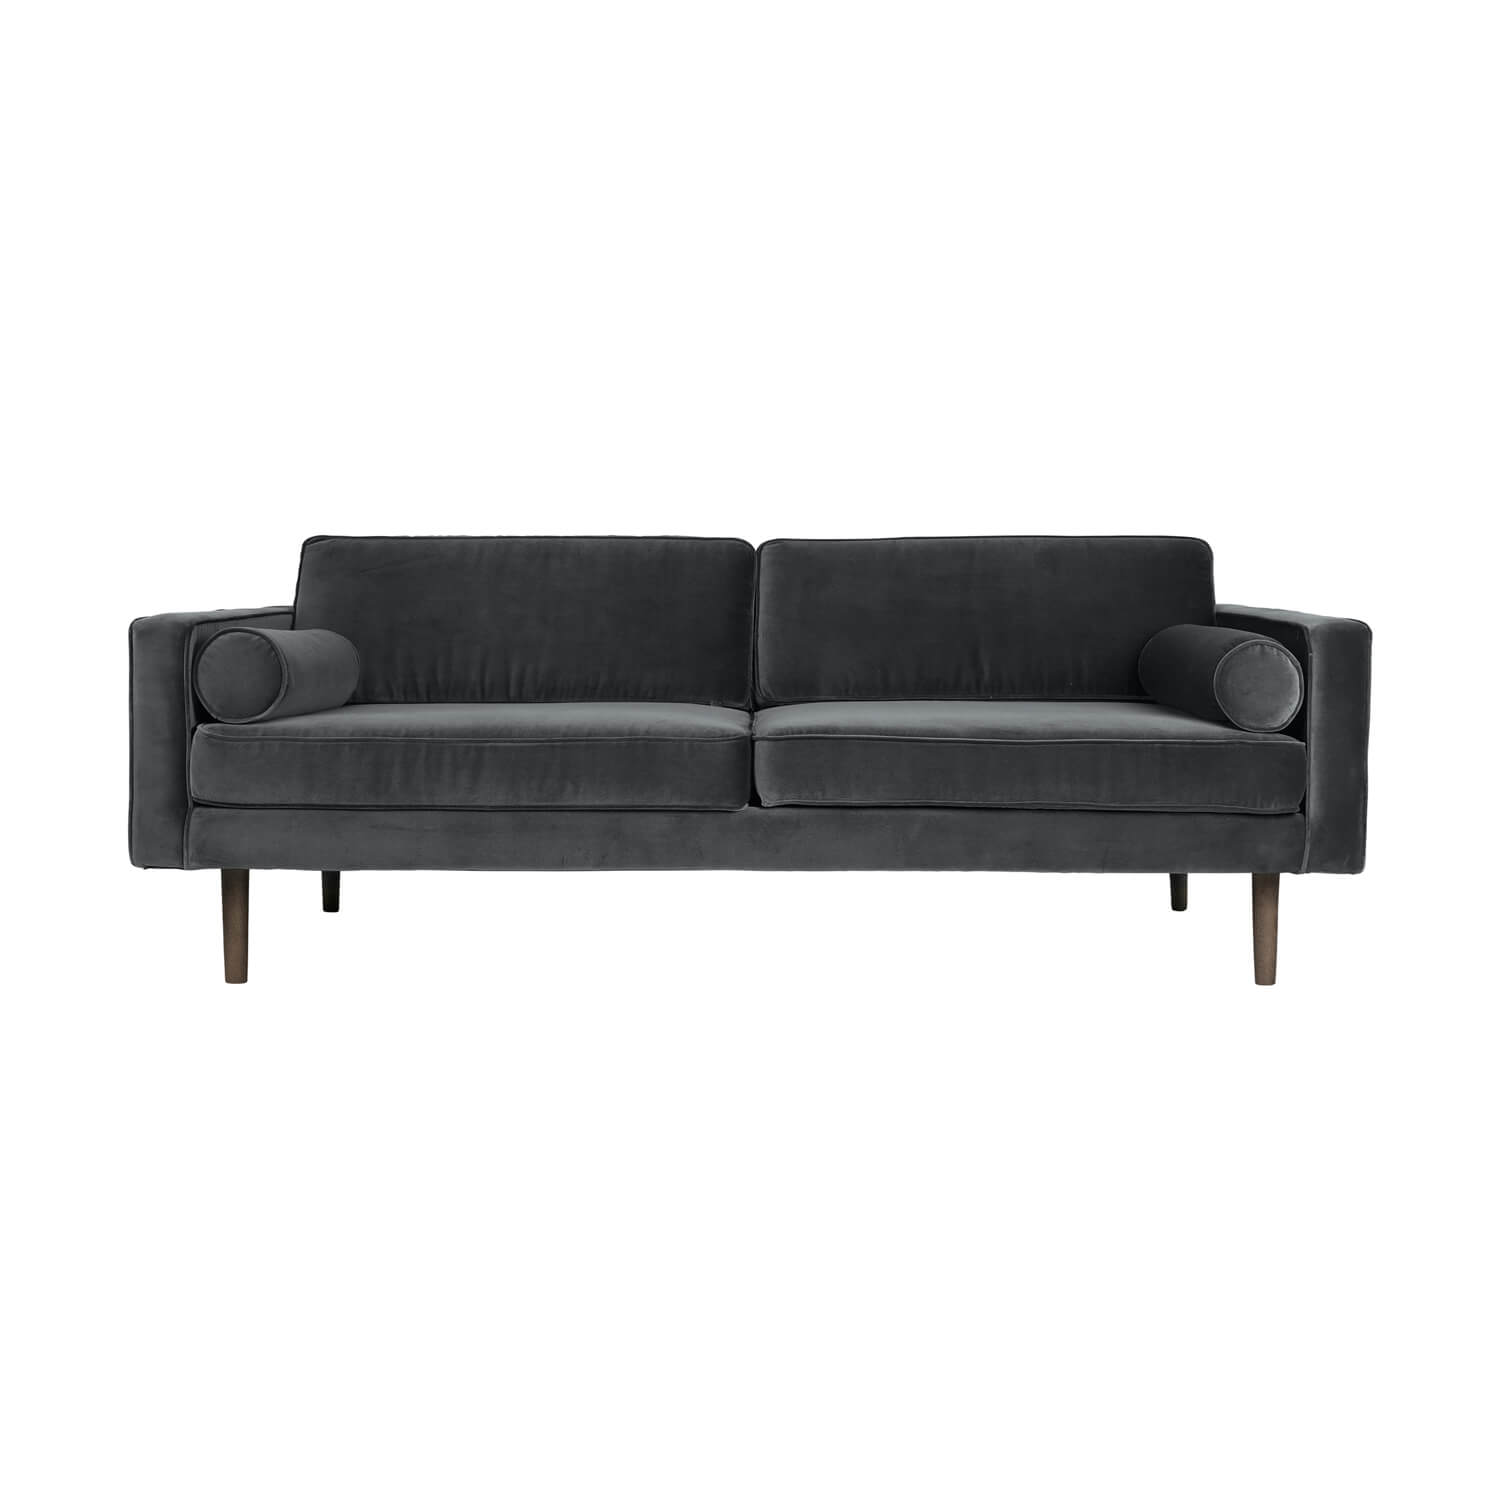 broste copenhagen sofa wind samt verschiedene farbvarianten. Black Bedroom Furniture Sets. Home Design Ideas